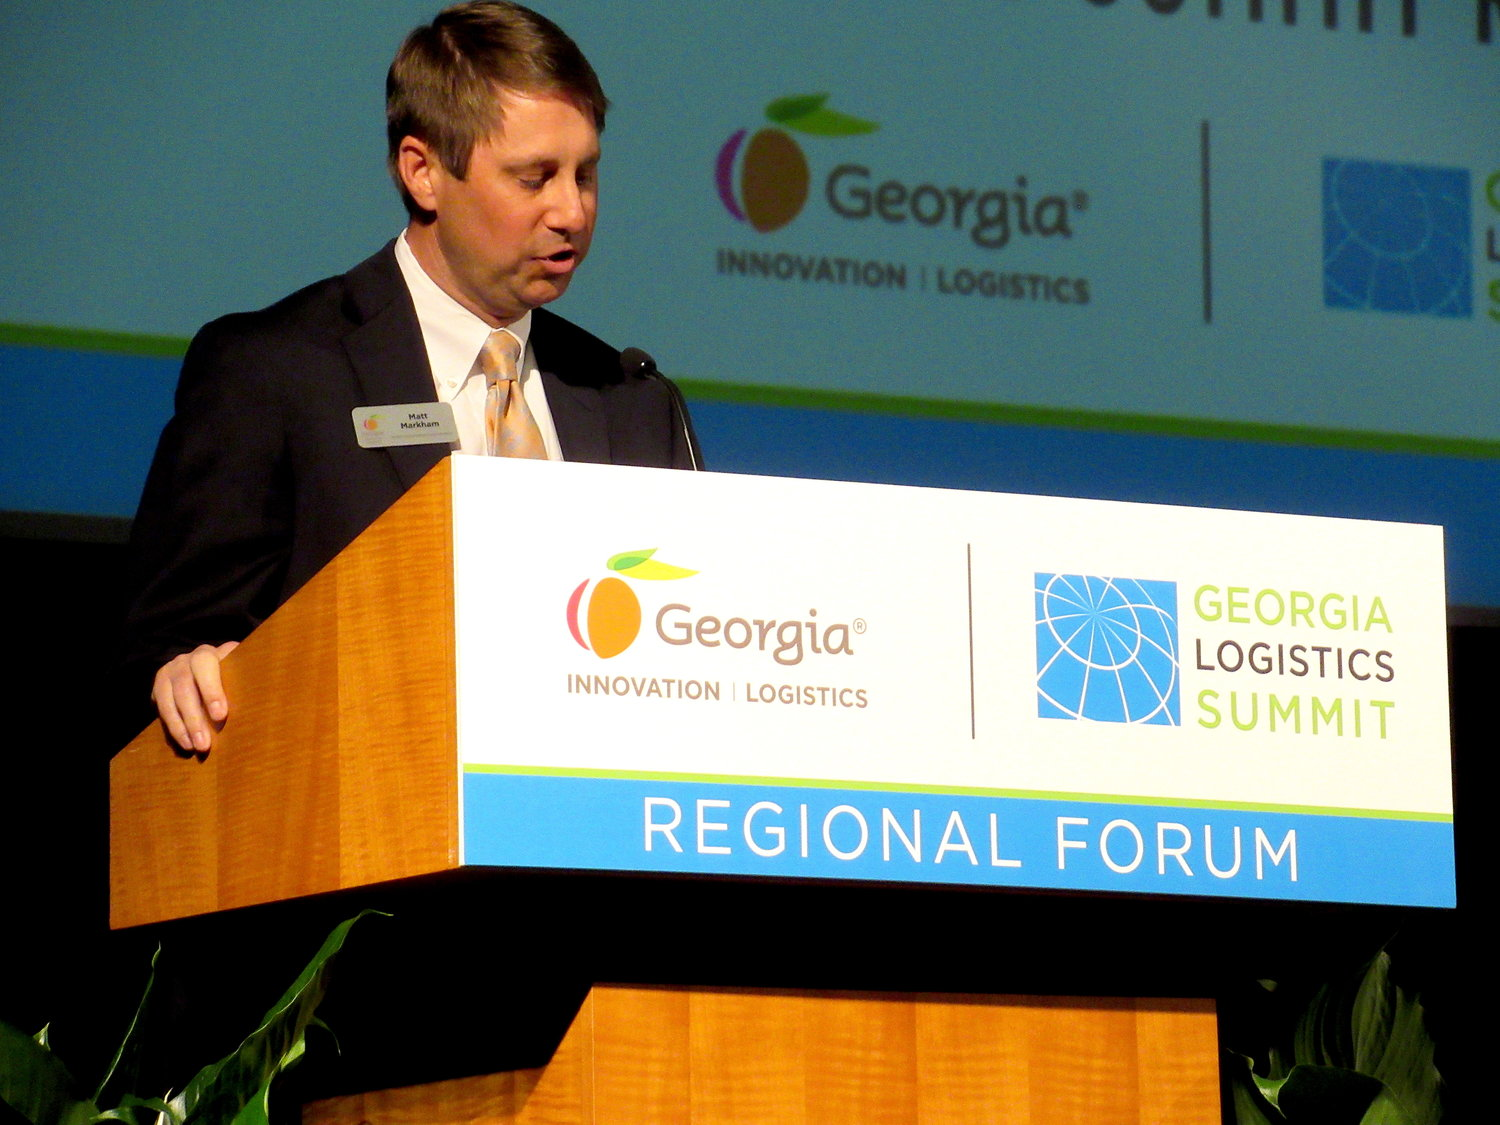 Center of Innovation for Logistics Director Matt Markham gives opening remarks at Thursday's 11th Annual Georgia Logistics Summit Regional Forum.